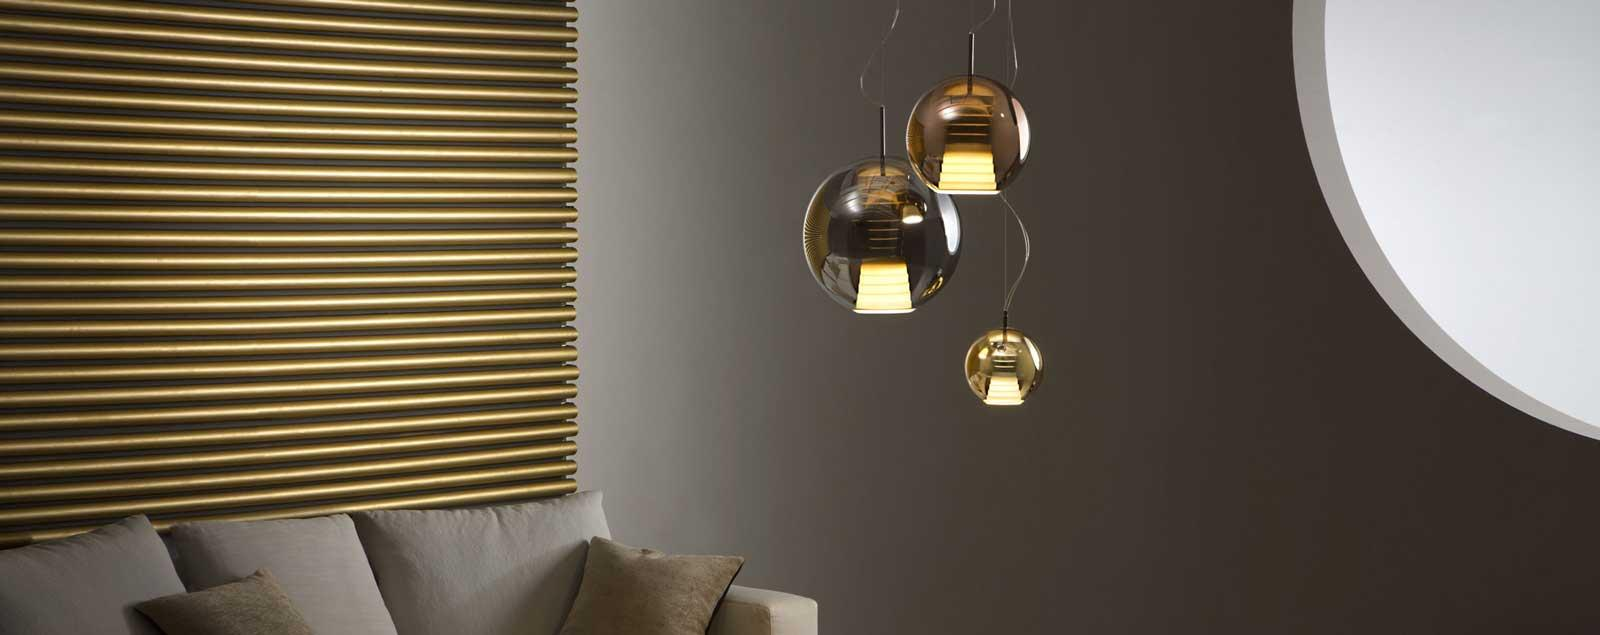 D57 Beluga Royal collection - Lamps and Chandeliers Fabbian ...